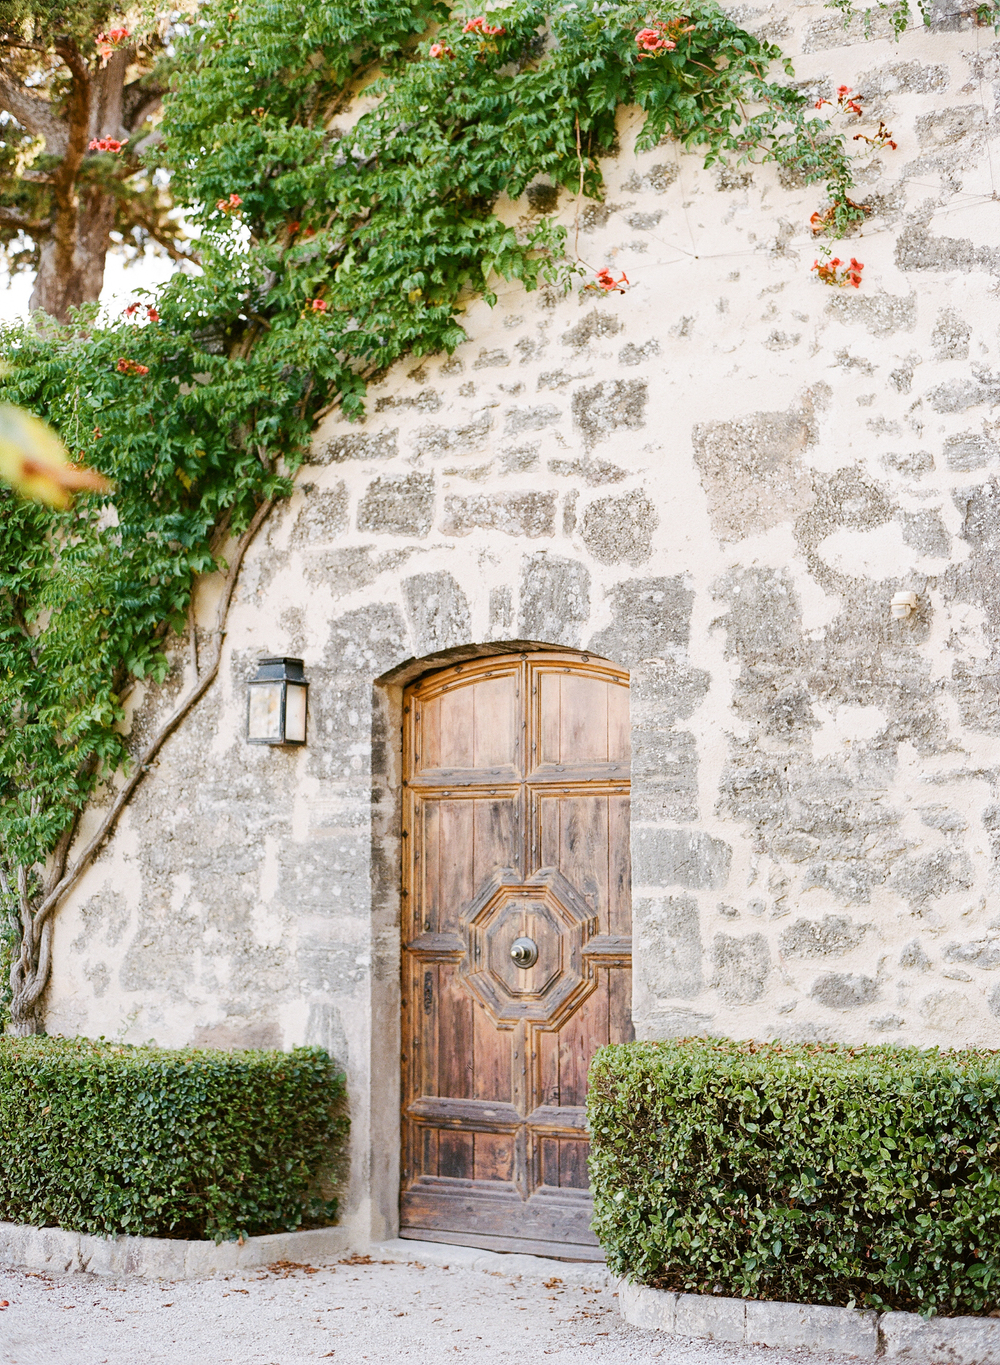 A rustic wooden door set into a vine-covered village wall in Provence; photo by Sylvie Gil